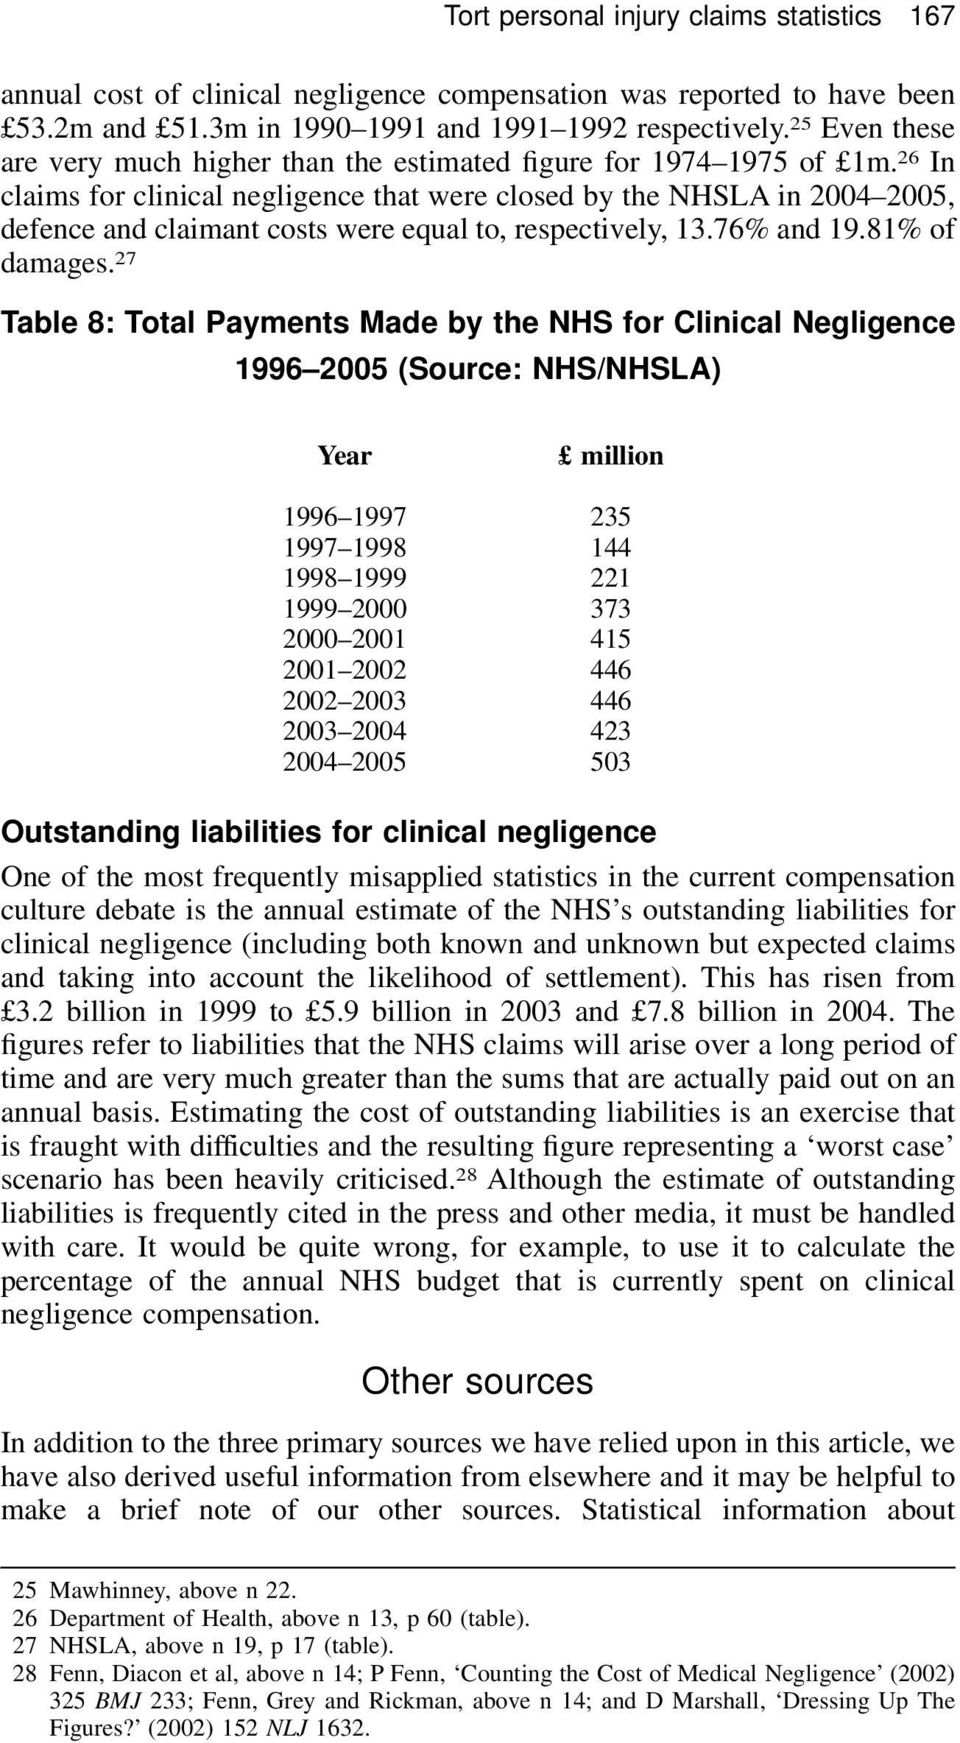 26 In claims for clinical negligence that were closed by the NHSLA in 2004 2005, defence and claimant costs were equal to, respectively, 13.76% and 19.81% of damages.